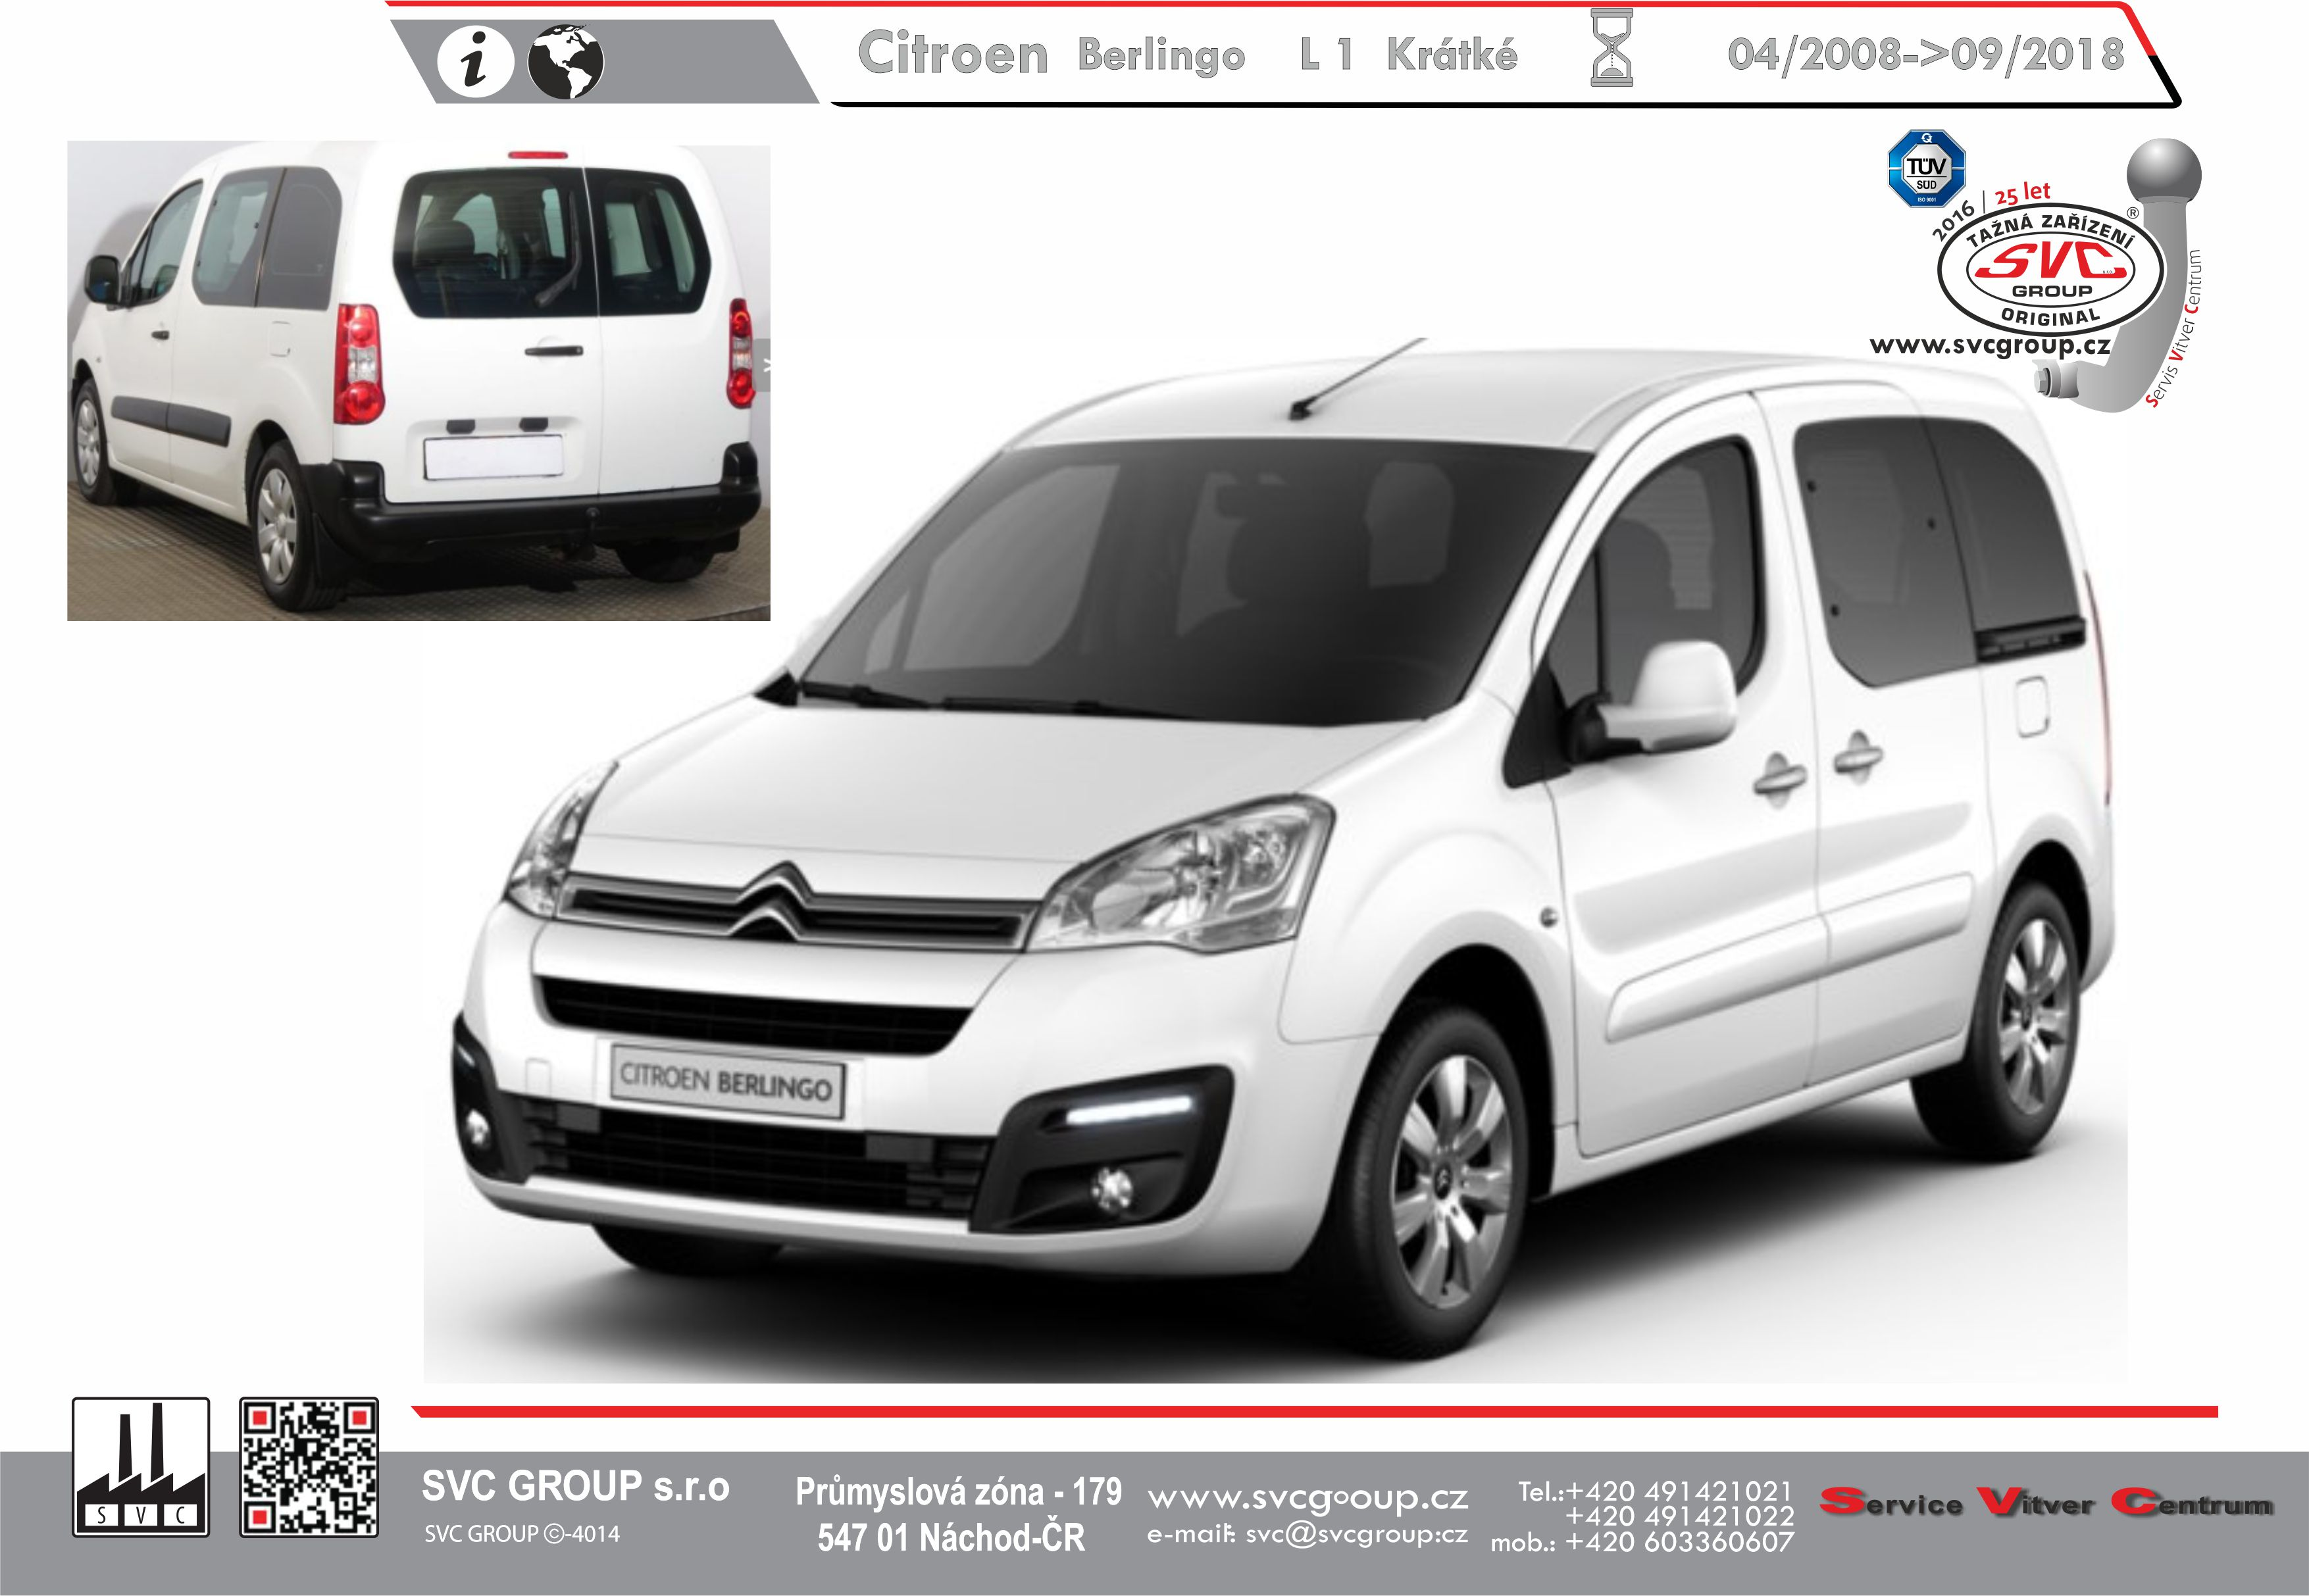 Citroën Berlingo L-1 Standardní - (L / M)